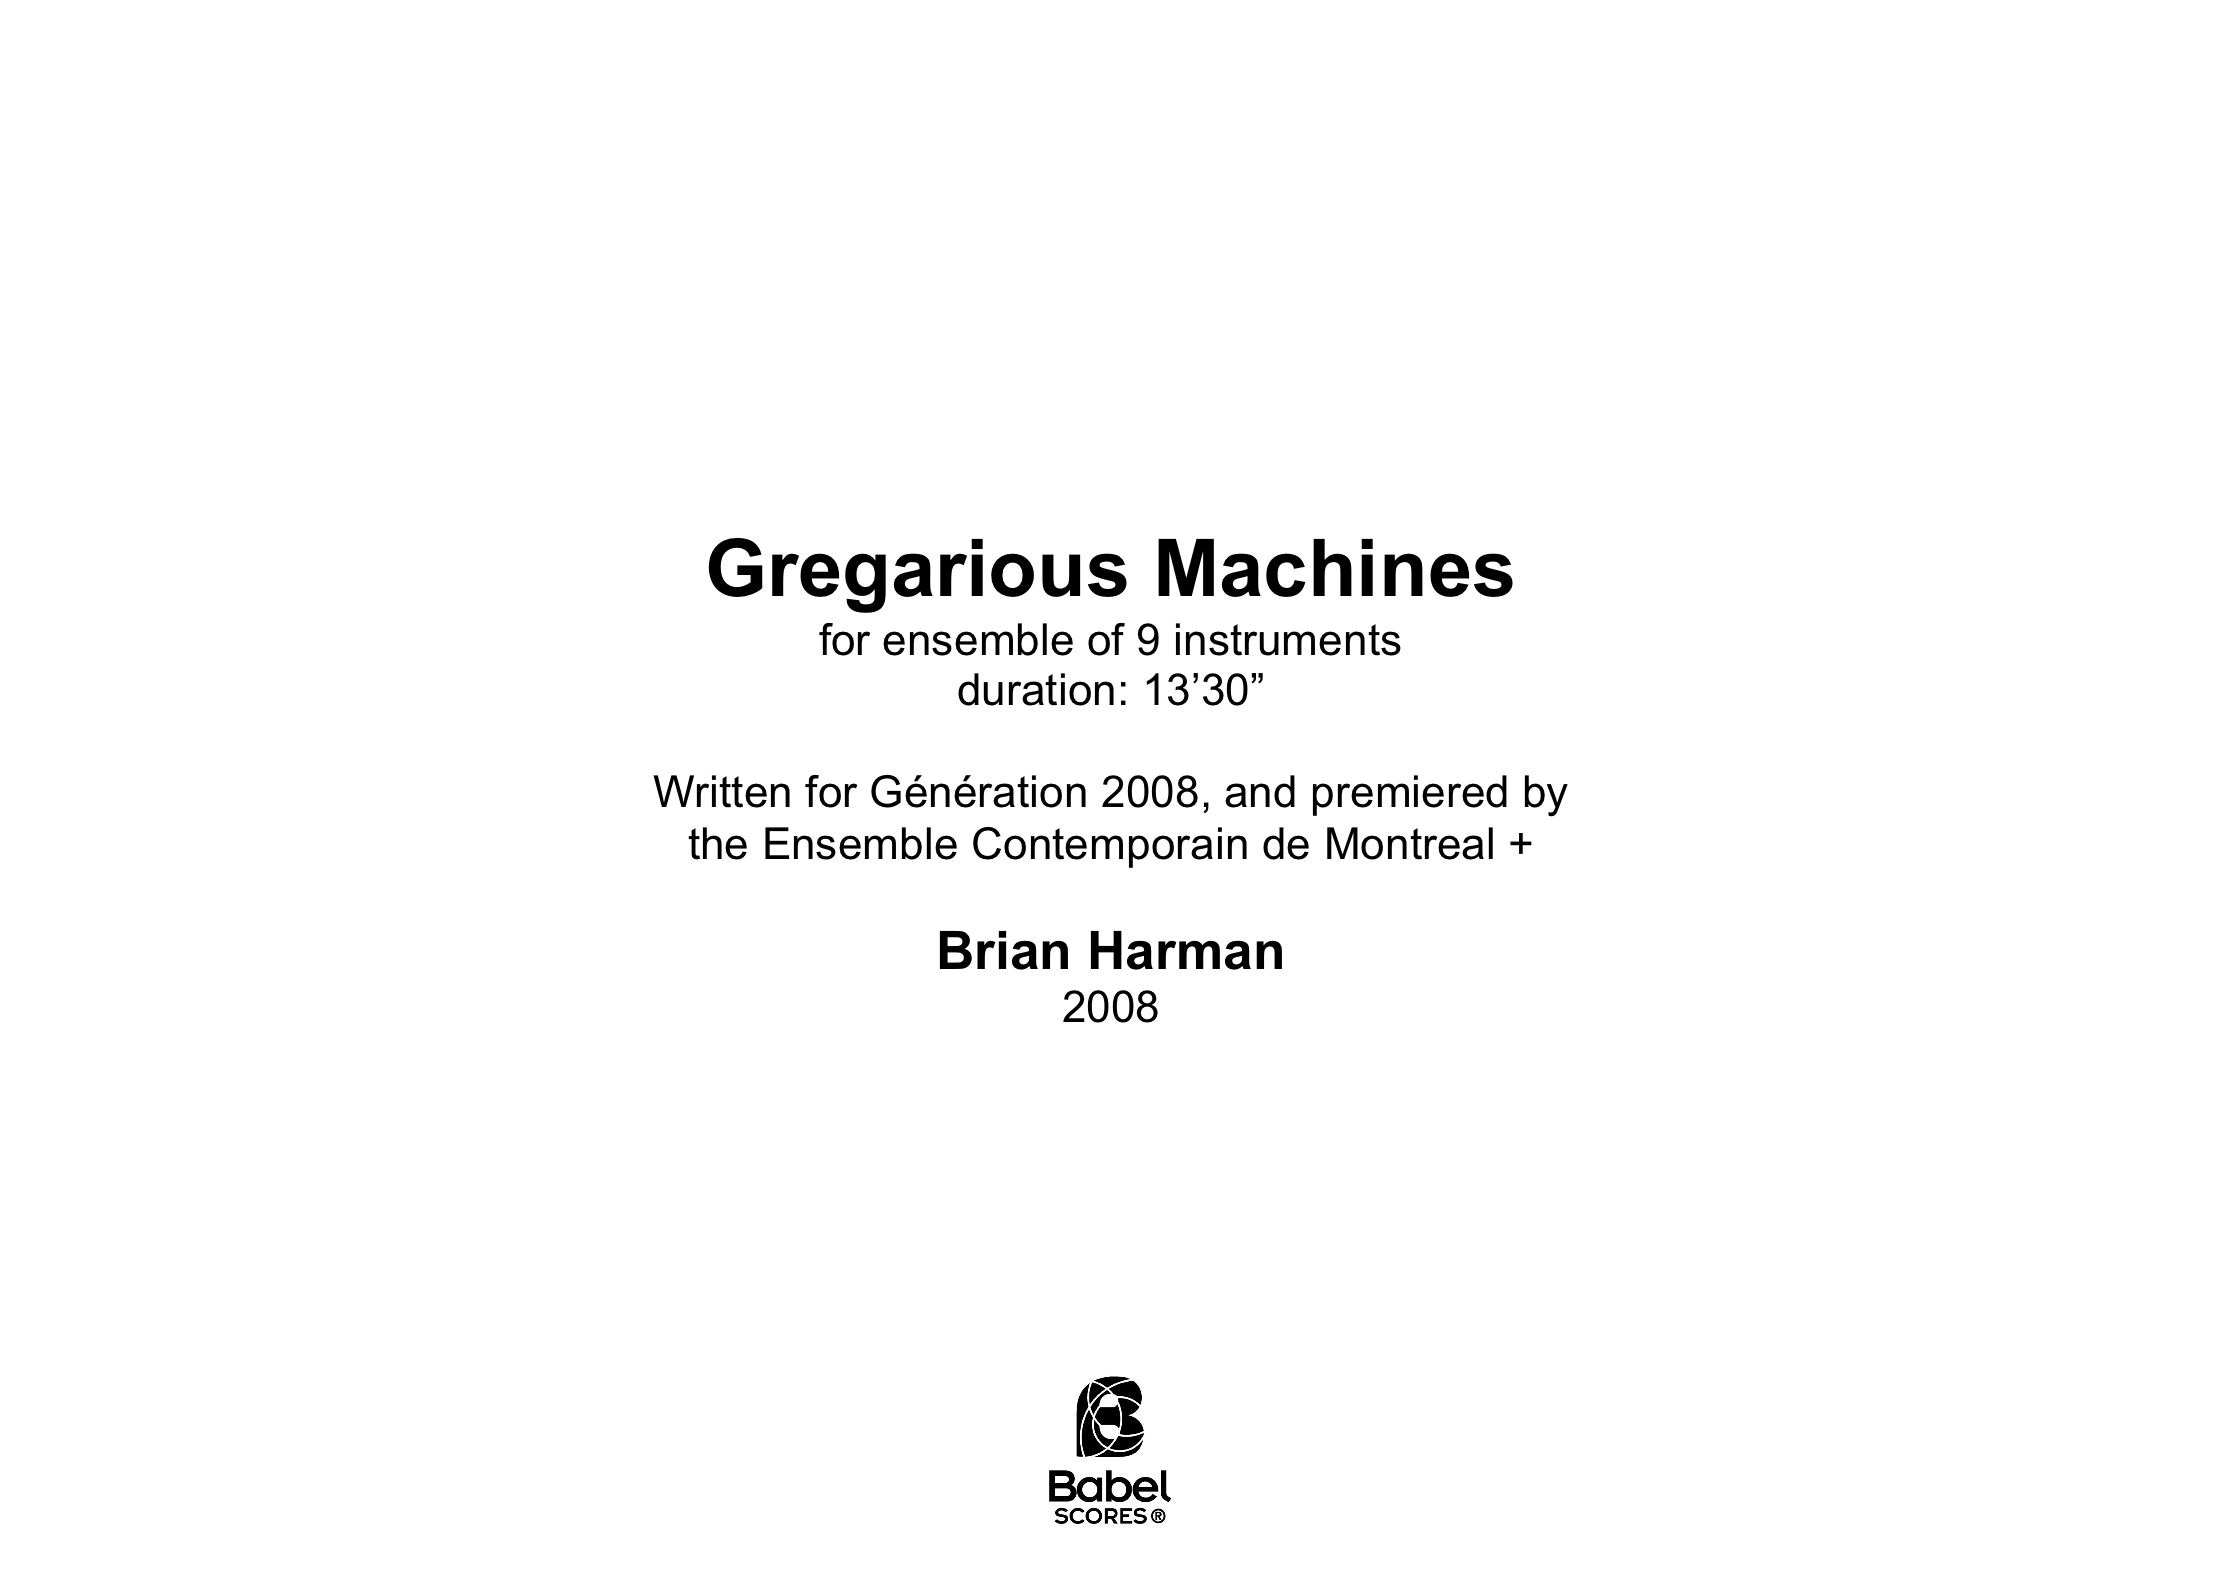 Gregarious Machines Brian Harman A4 z